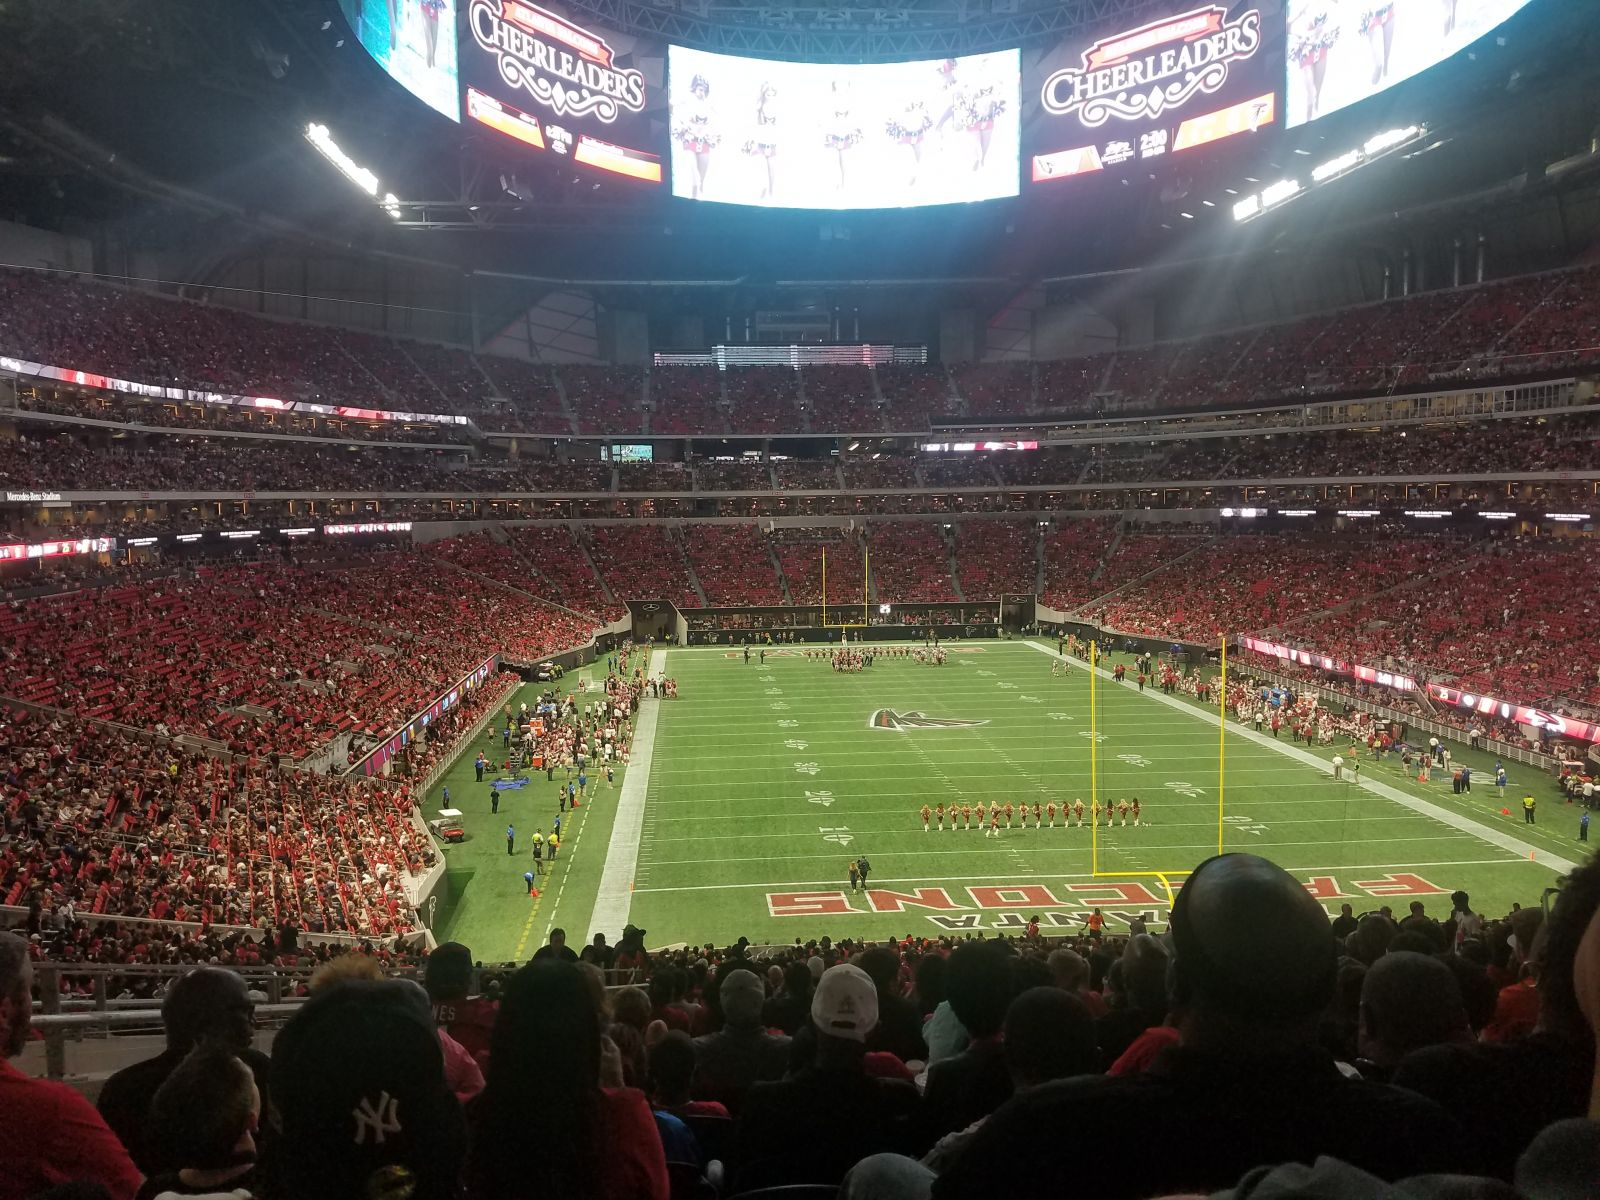 Good view of the halo board mercedes benz stadium section for View from my seat mercedes benz stadium